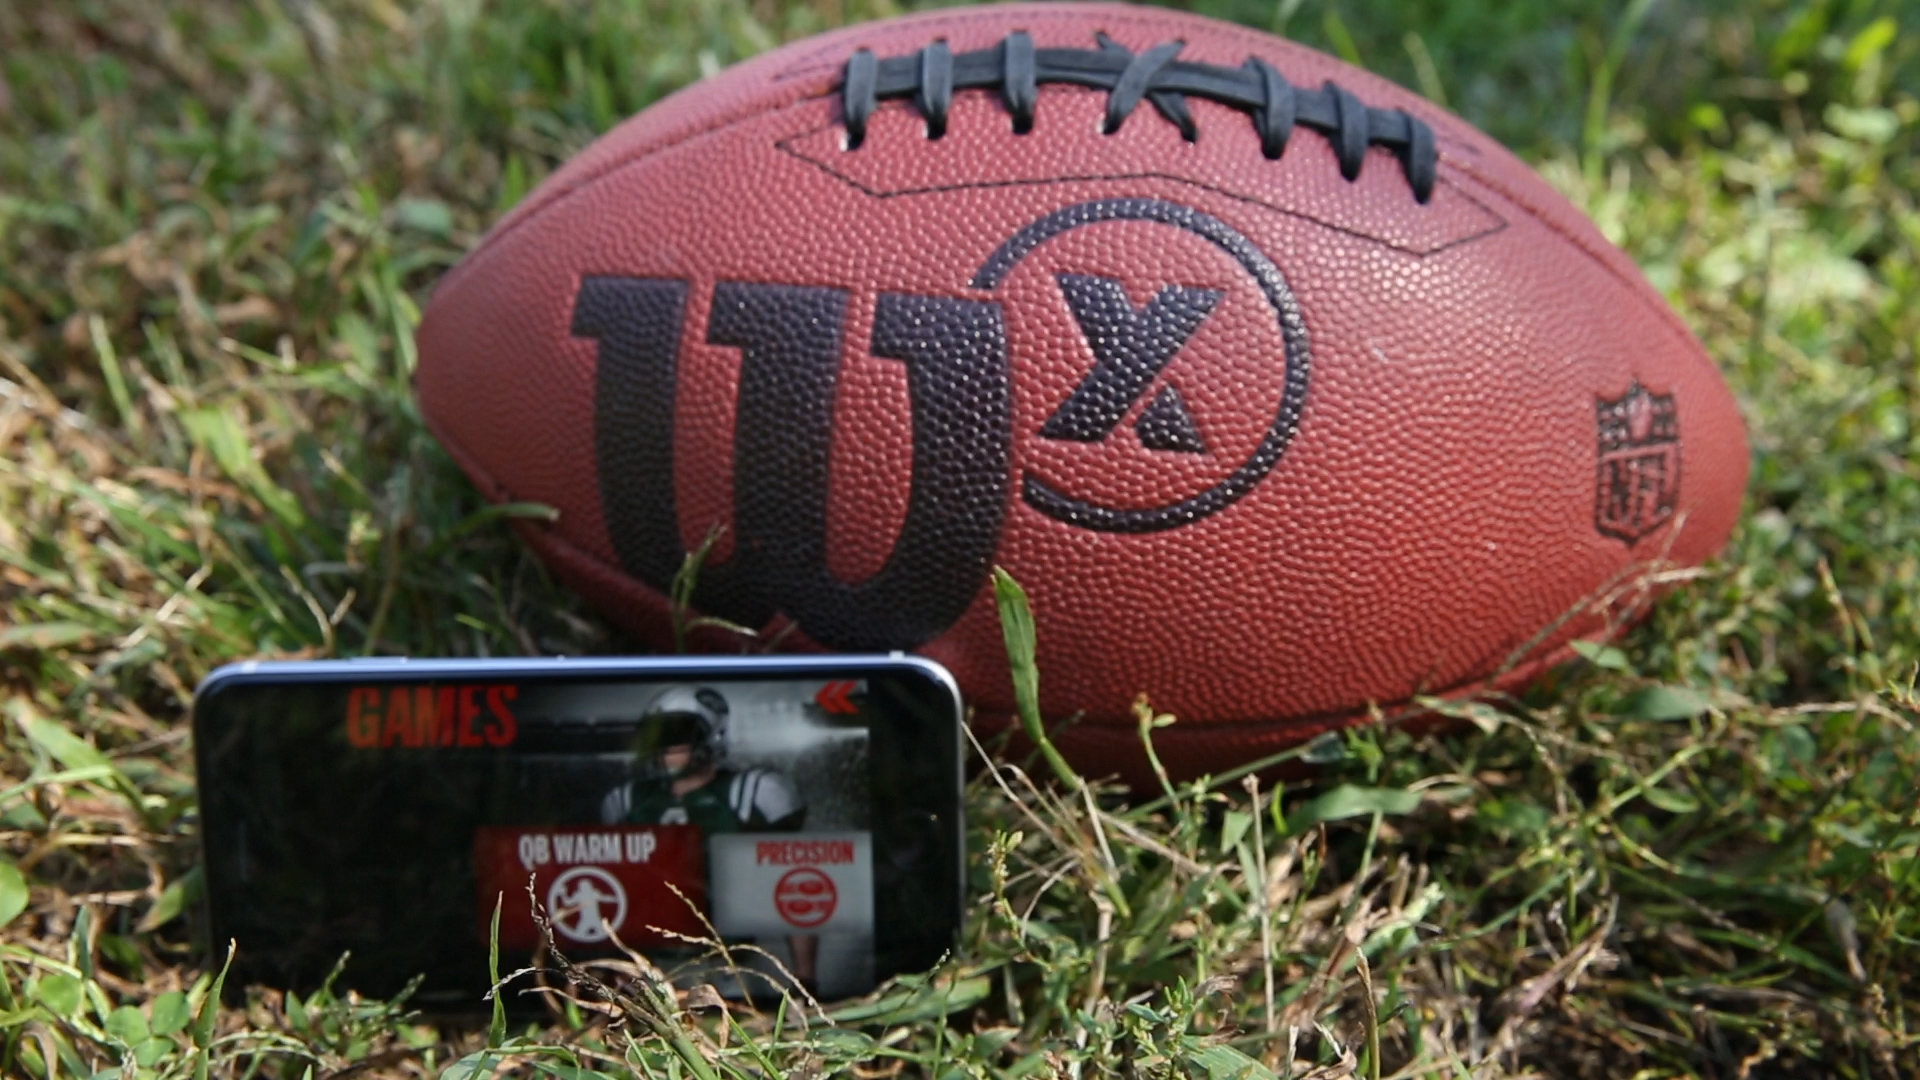 Video: Playing catch with the Wilson X Connected Football